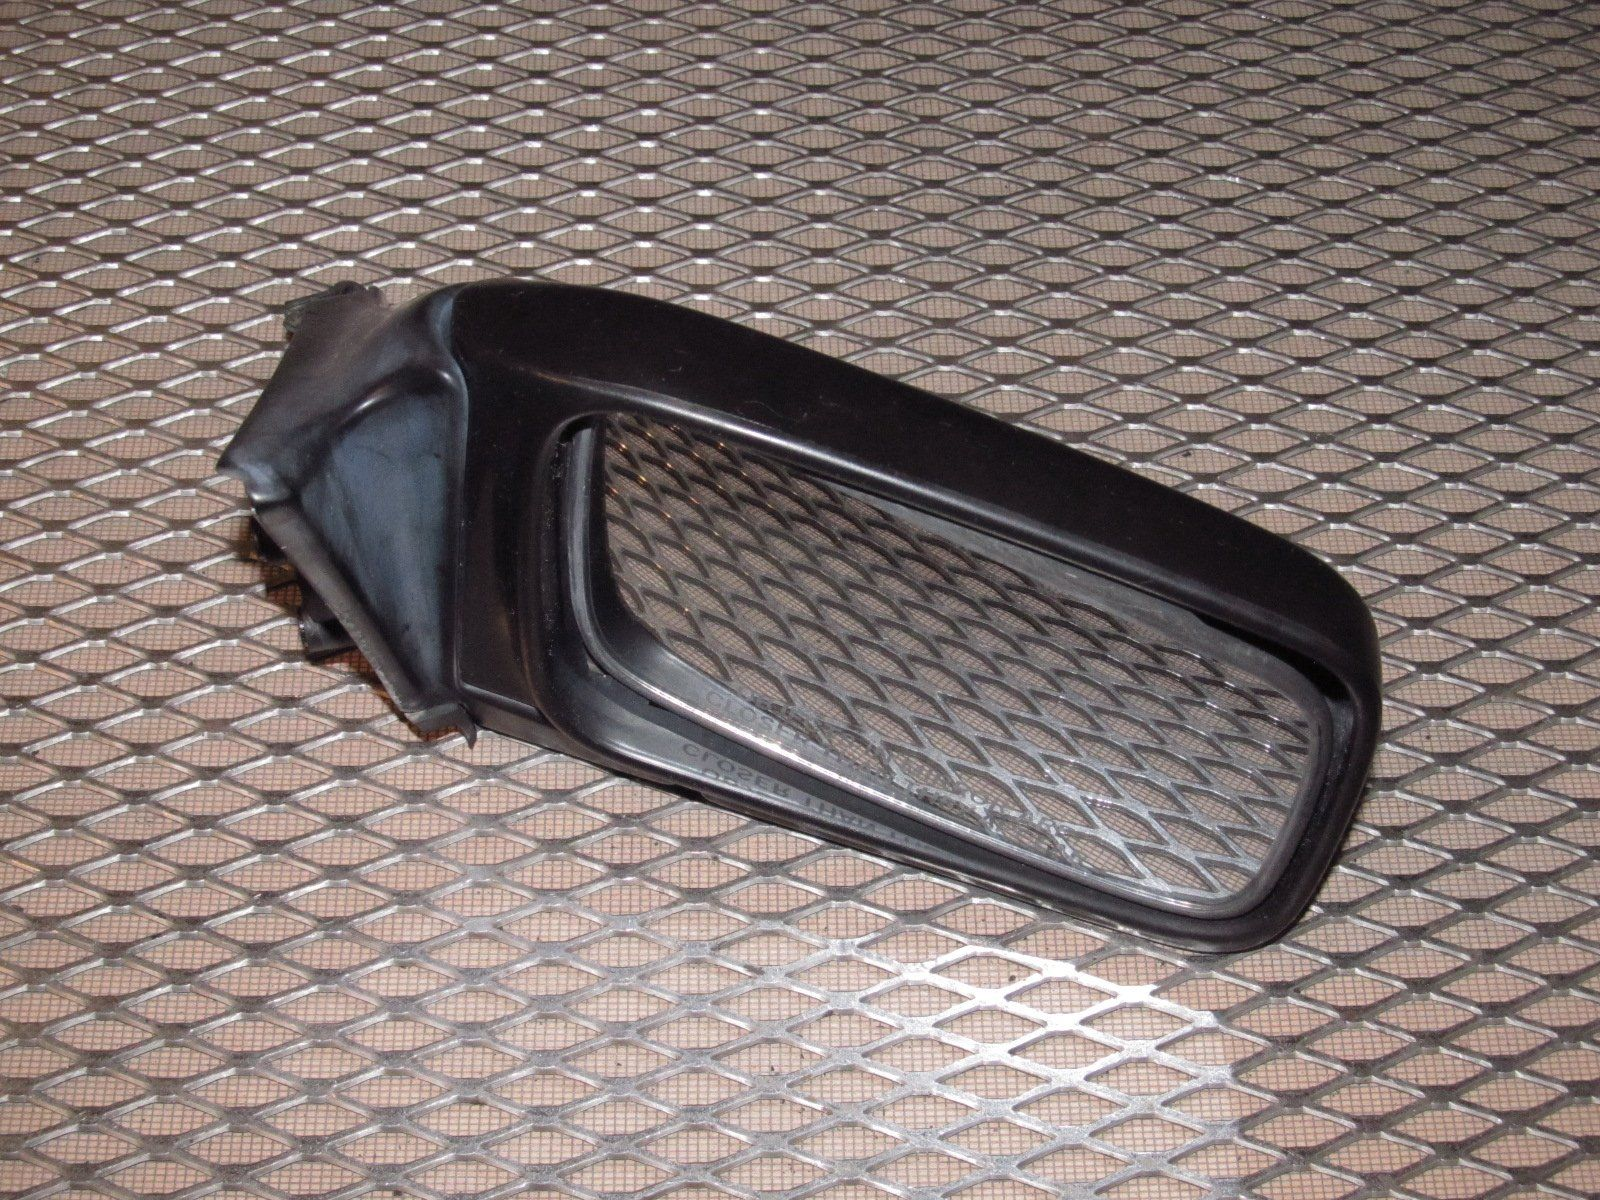 87 88 89 toyota mr2 oem exterior side mirror manual right rh pinterest co uk 85 MR2 Body Parts 88 MR2 Supercharged Specs